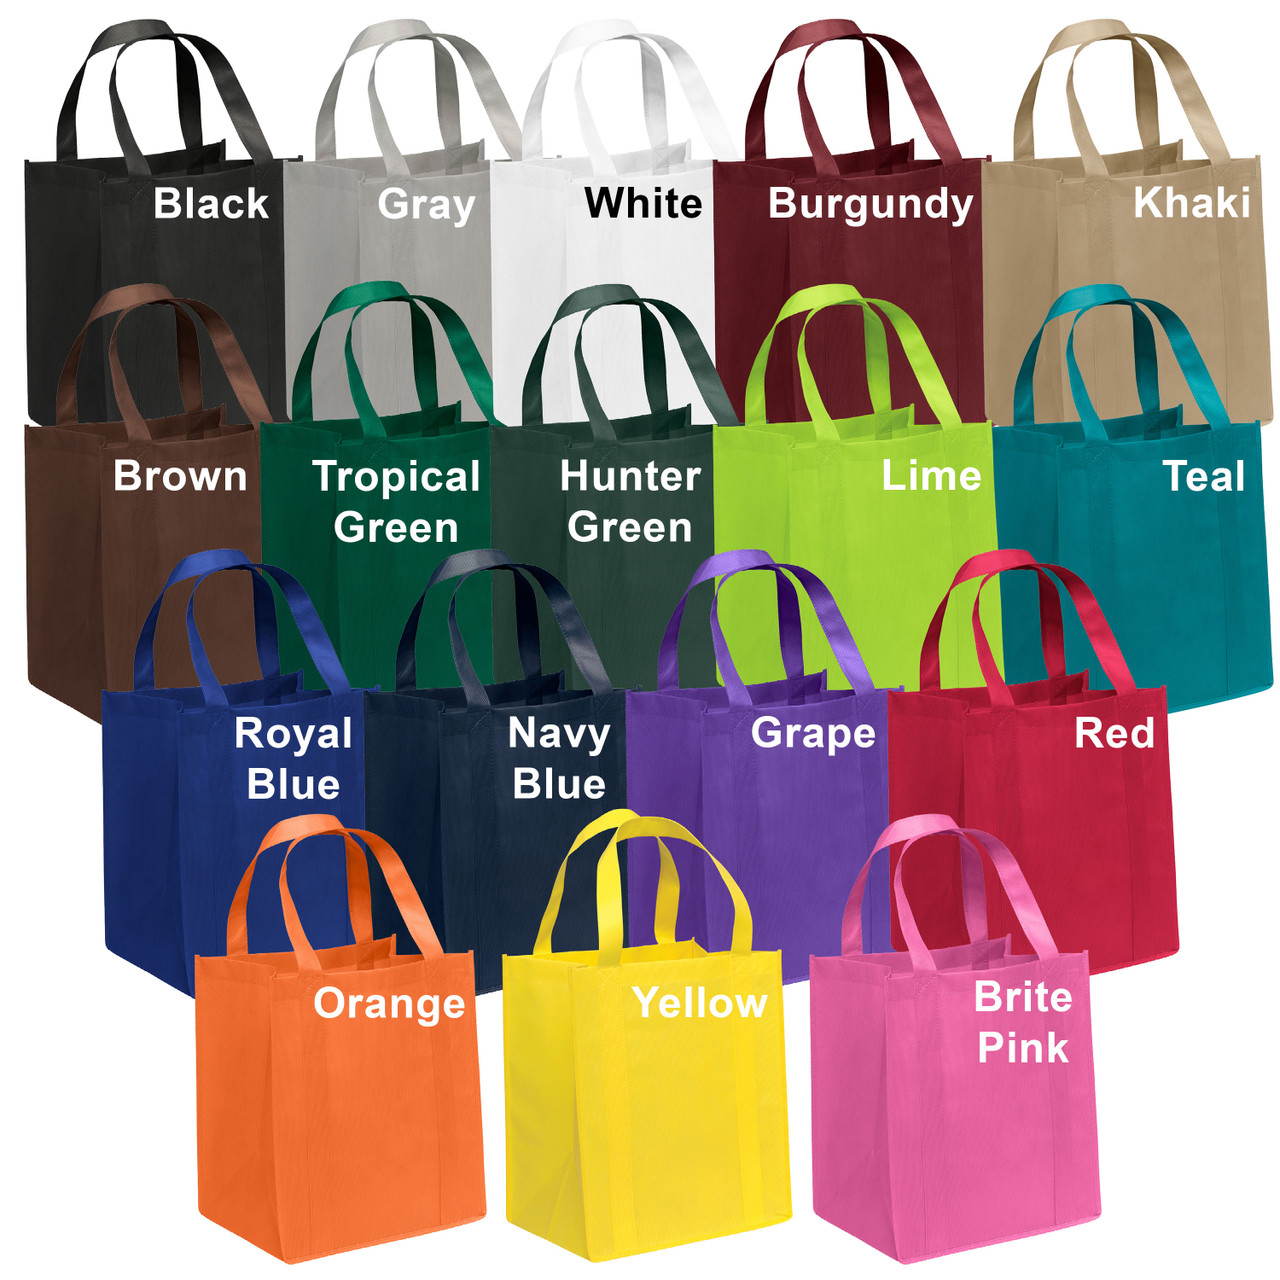 Bag Color Options